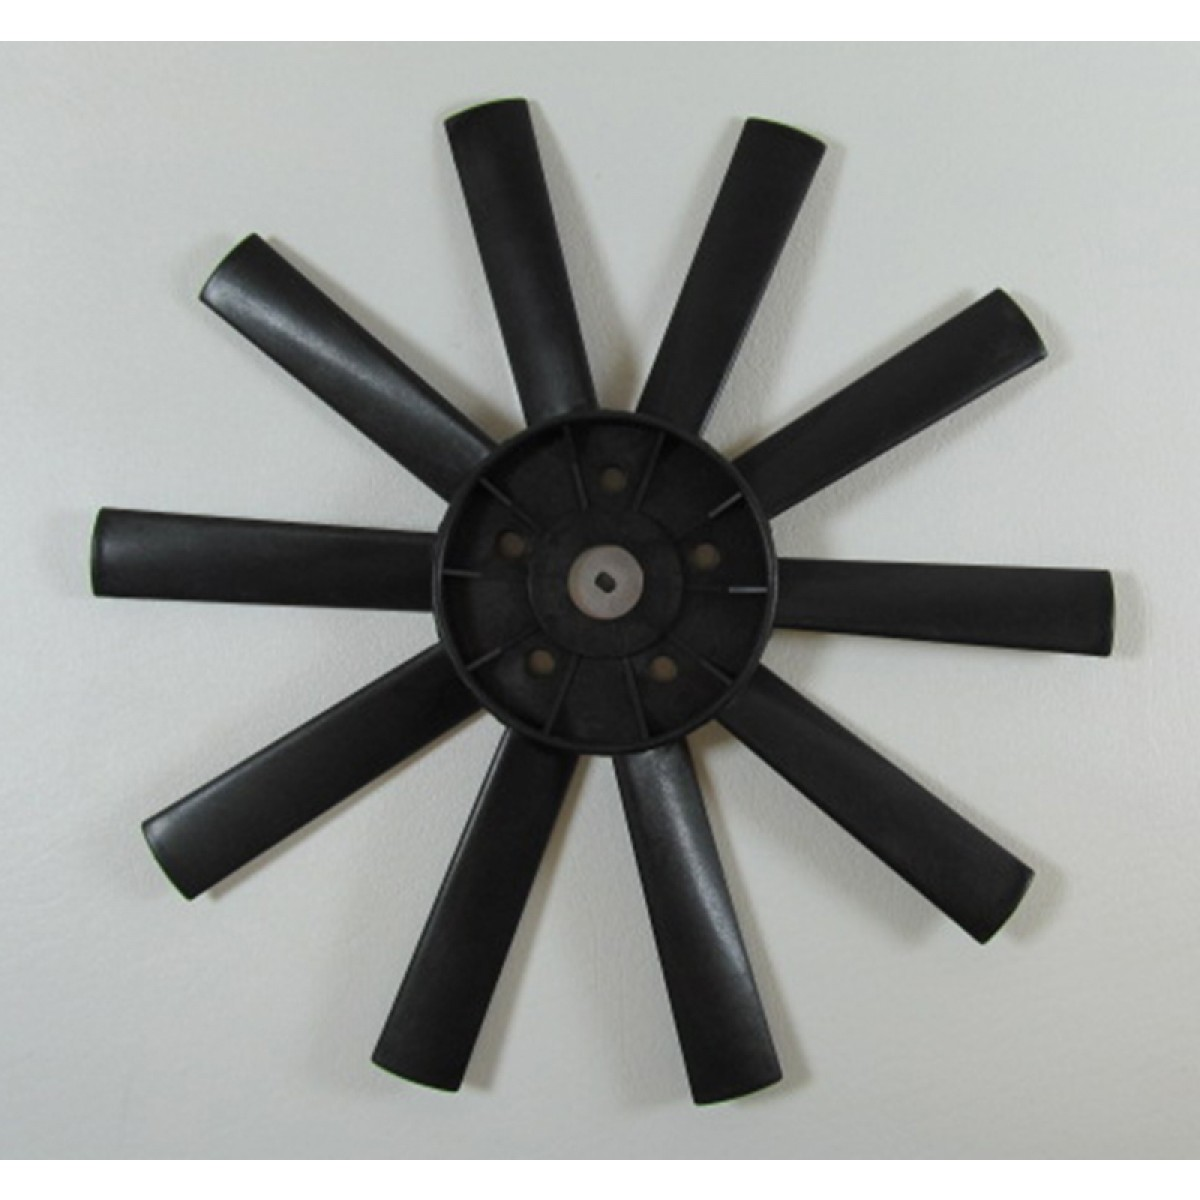 Replacement Electric Fan Blade Standard 14 inch #575141